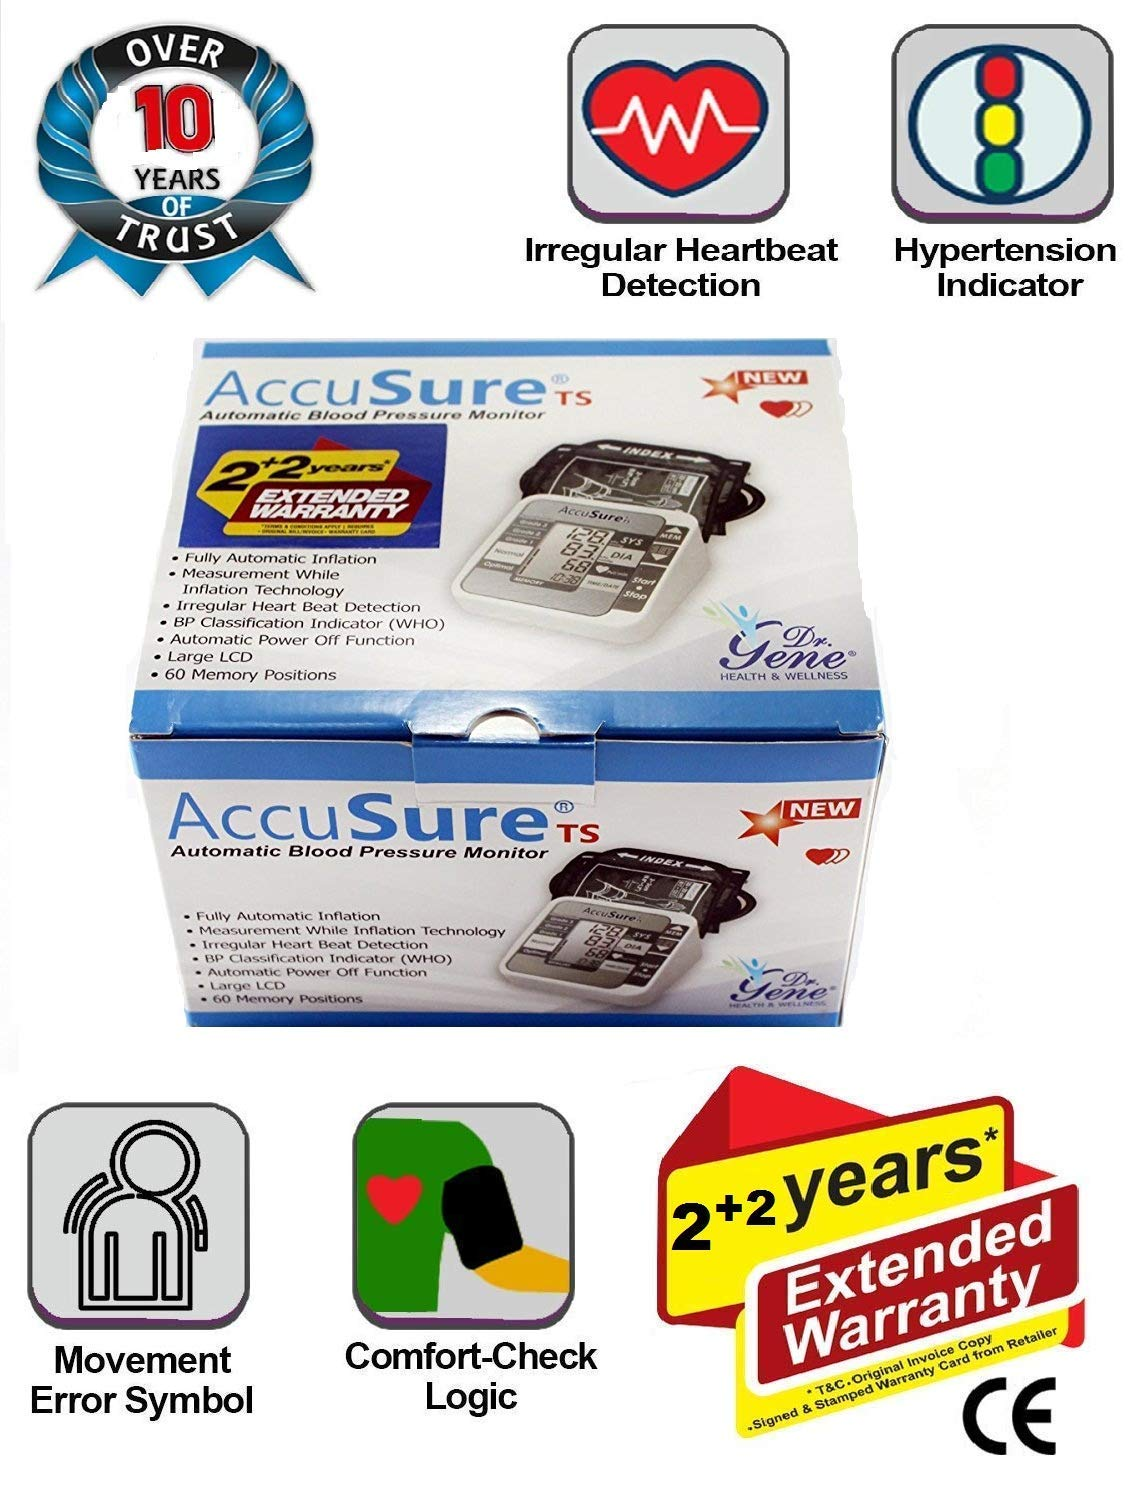 118b2aaf8903 ACCUSURE Blood Pressure Monitoring Machine 4 YEAR EXTENDED WARRANTY (BP  MONITOR)